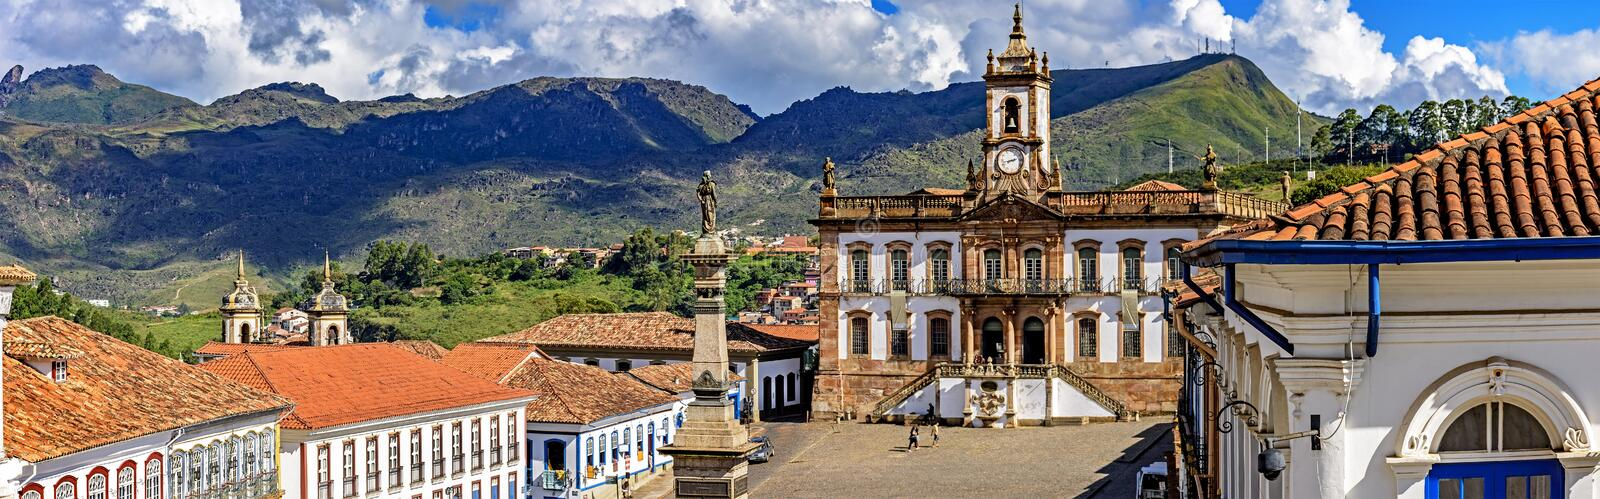 Panoramic view from above the central square of the historic city of Ouro Preto. With the museum of the inconfidence and the hills in the background stock photography